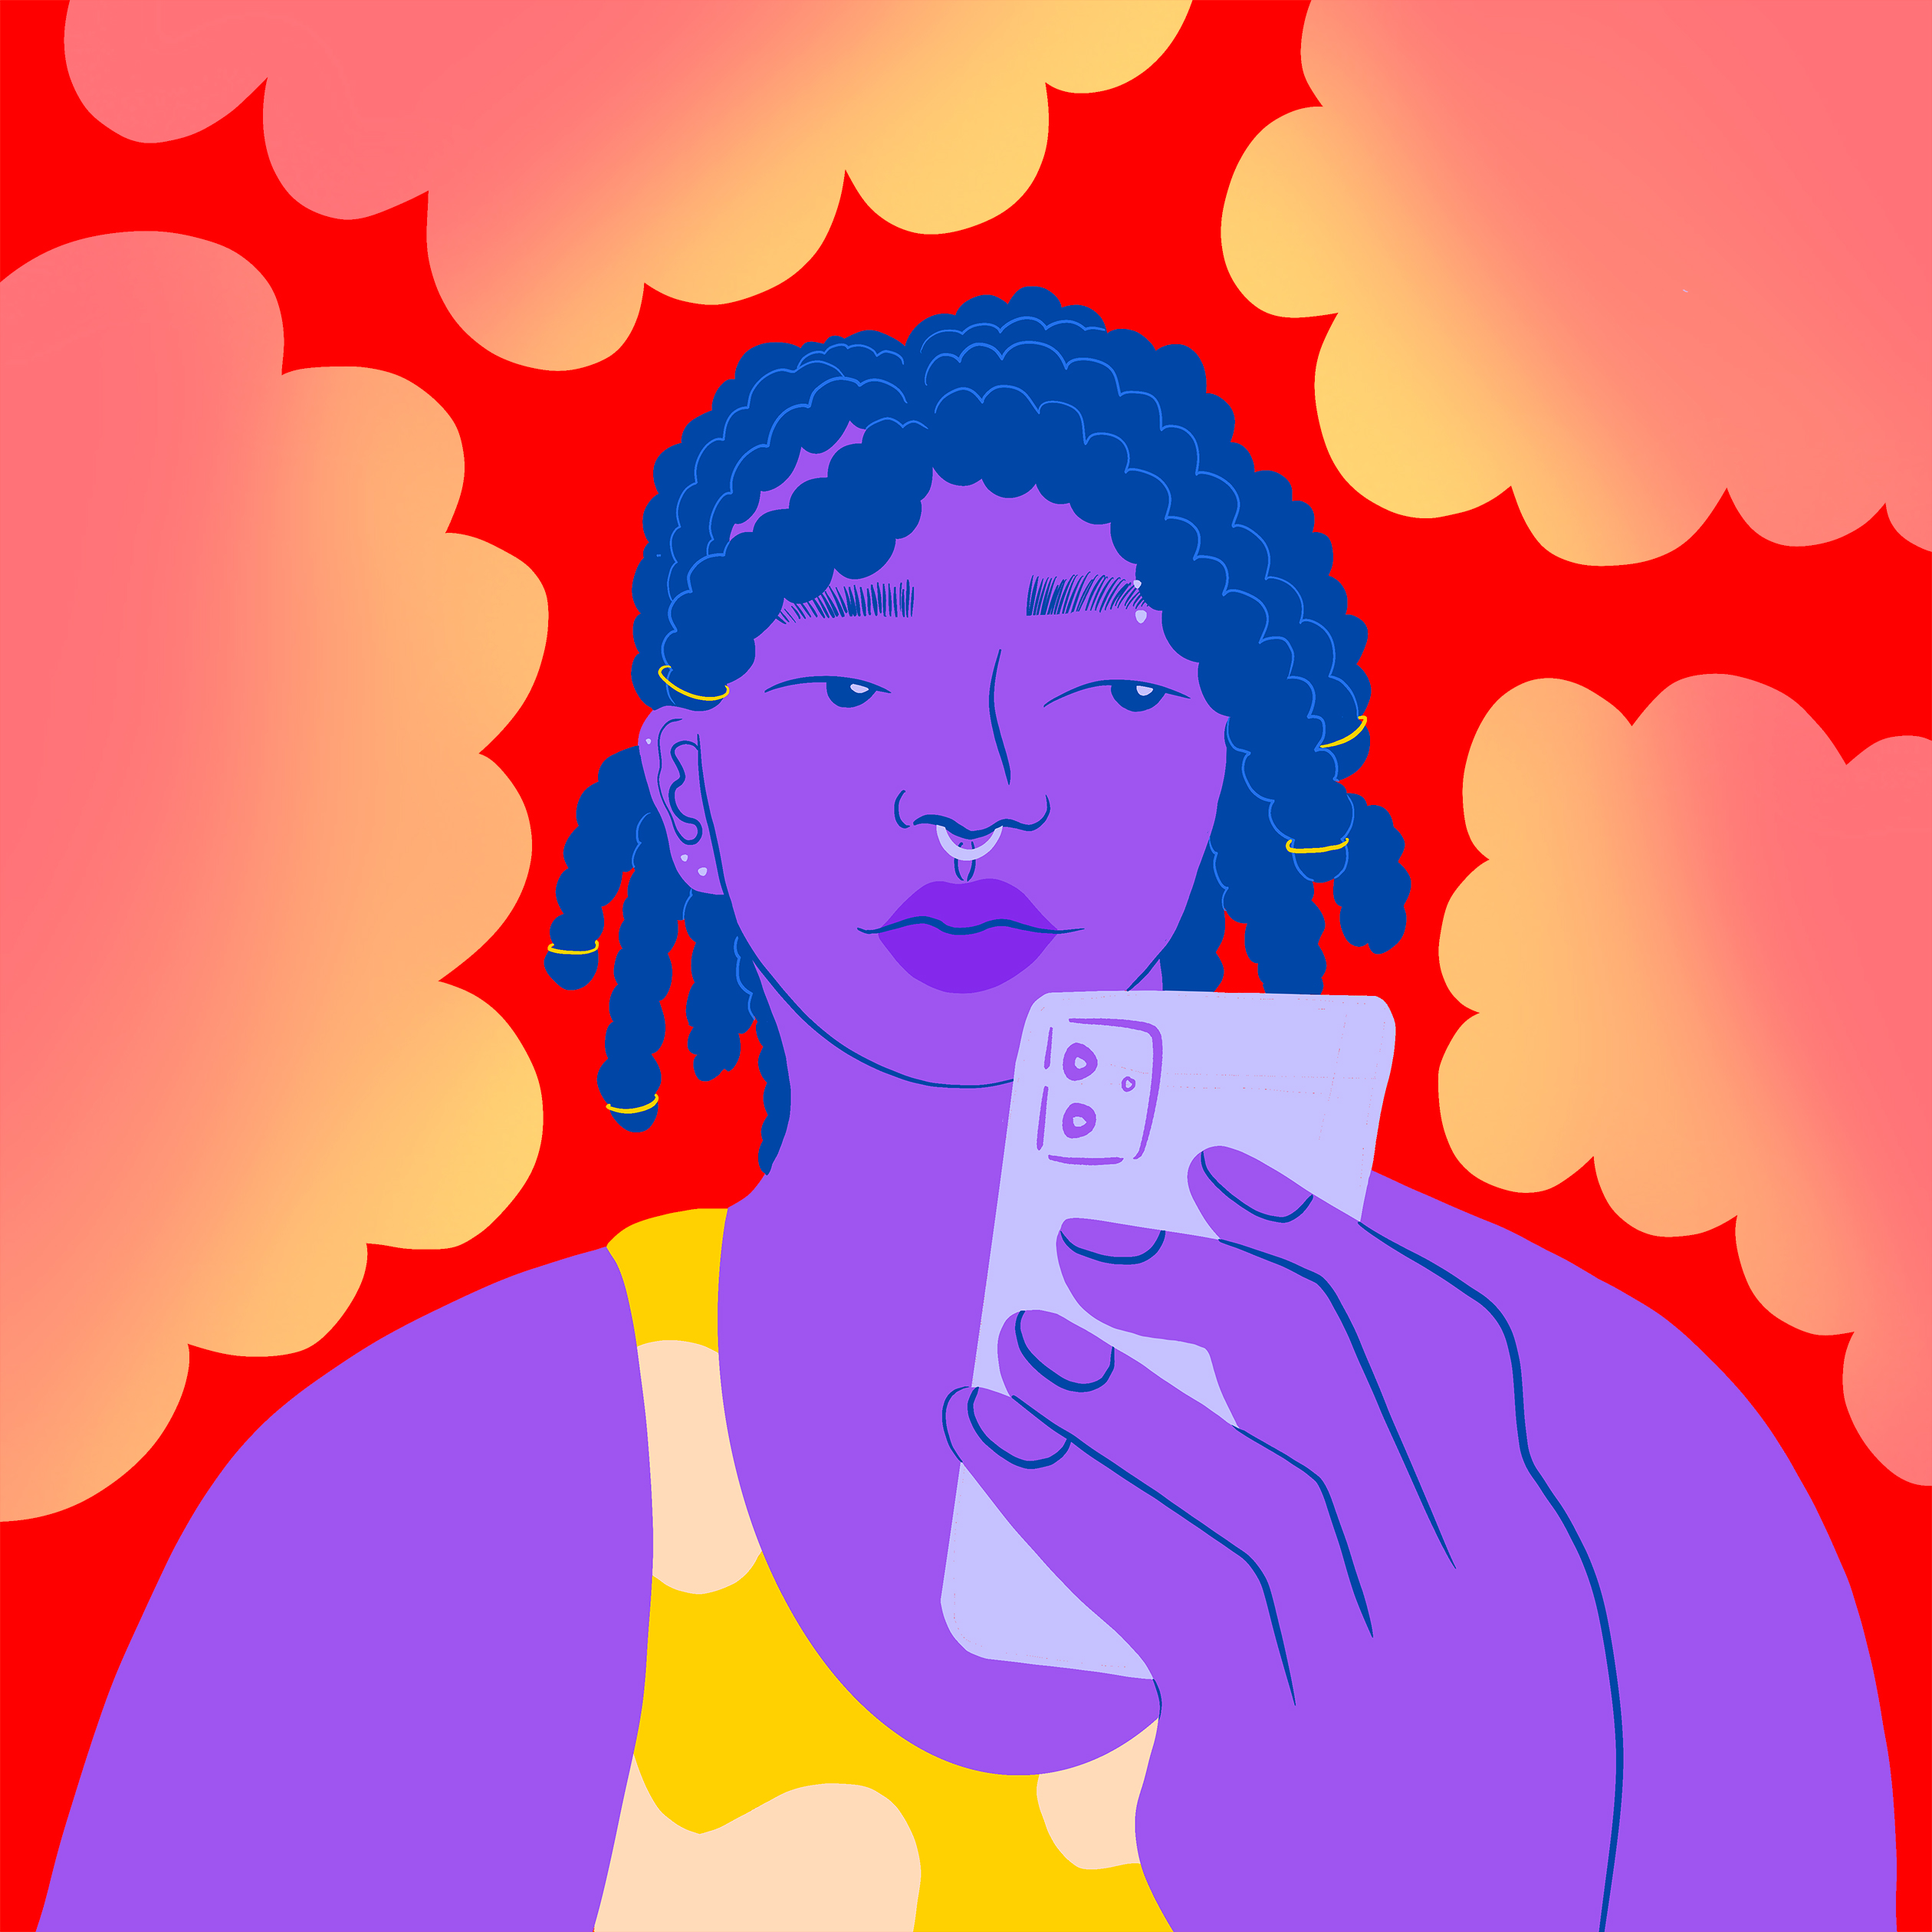 Illustration of a young person holding their phone, surrounded by calm, bright shapes similar to thought bubbles